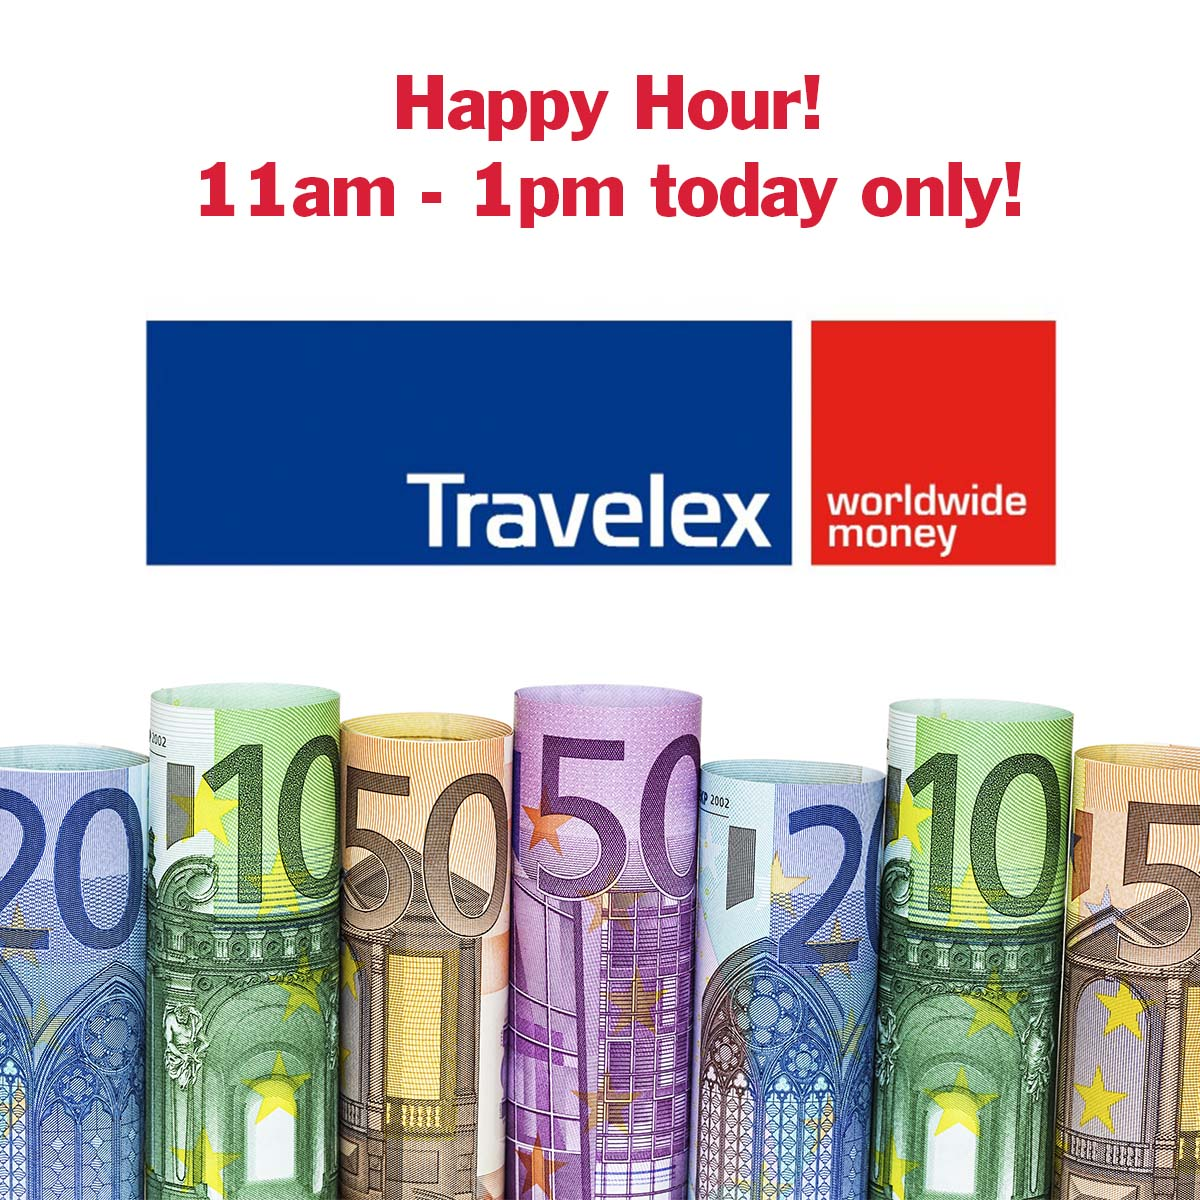 Today only! Between 11am and 1pm! Happy hour online @TravelexUK. Order any currency now: